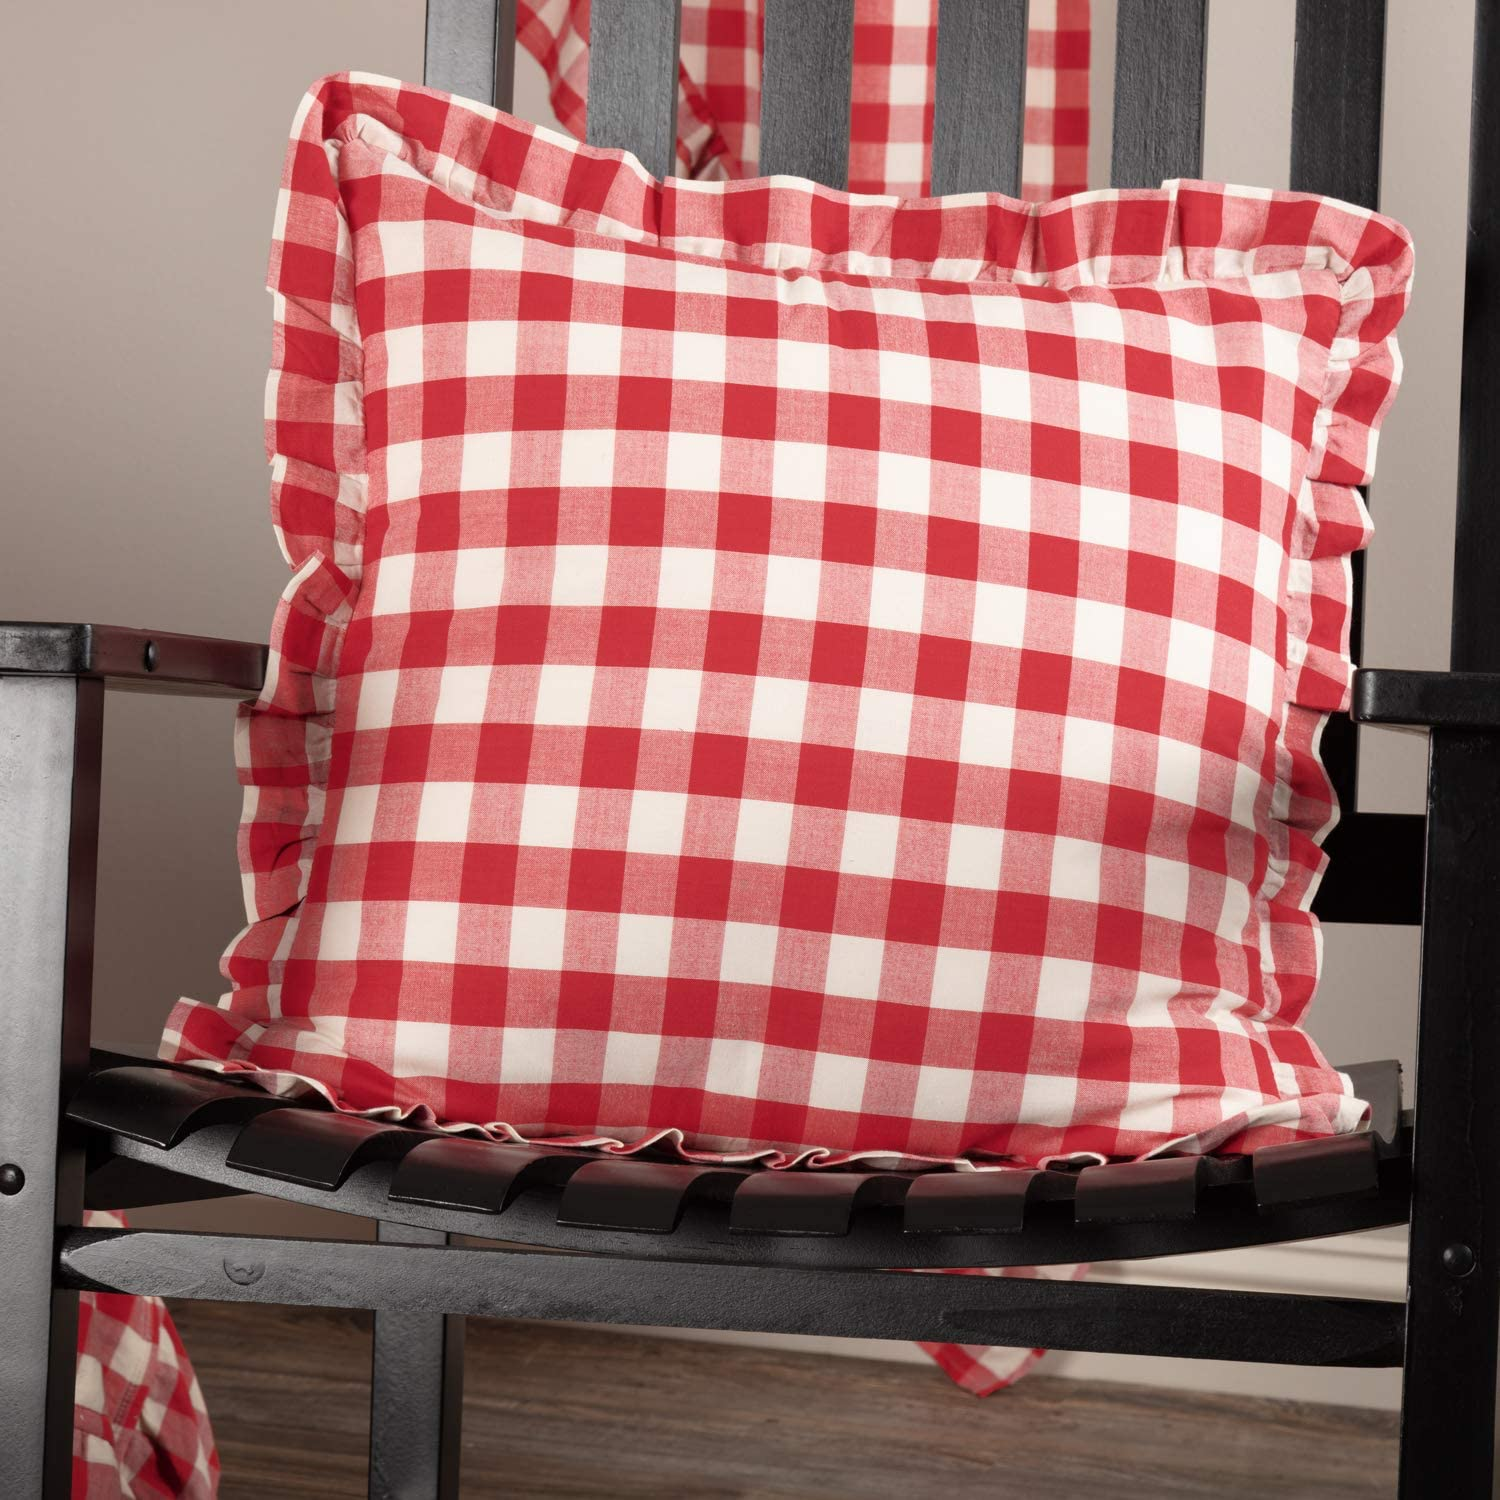 VHC Brands Annie Buffalo Check Bedding Accessory, Pillow 18x18, Red